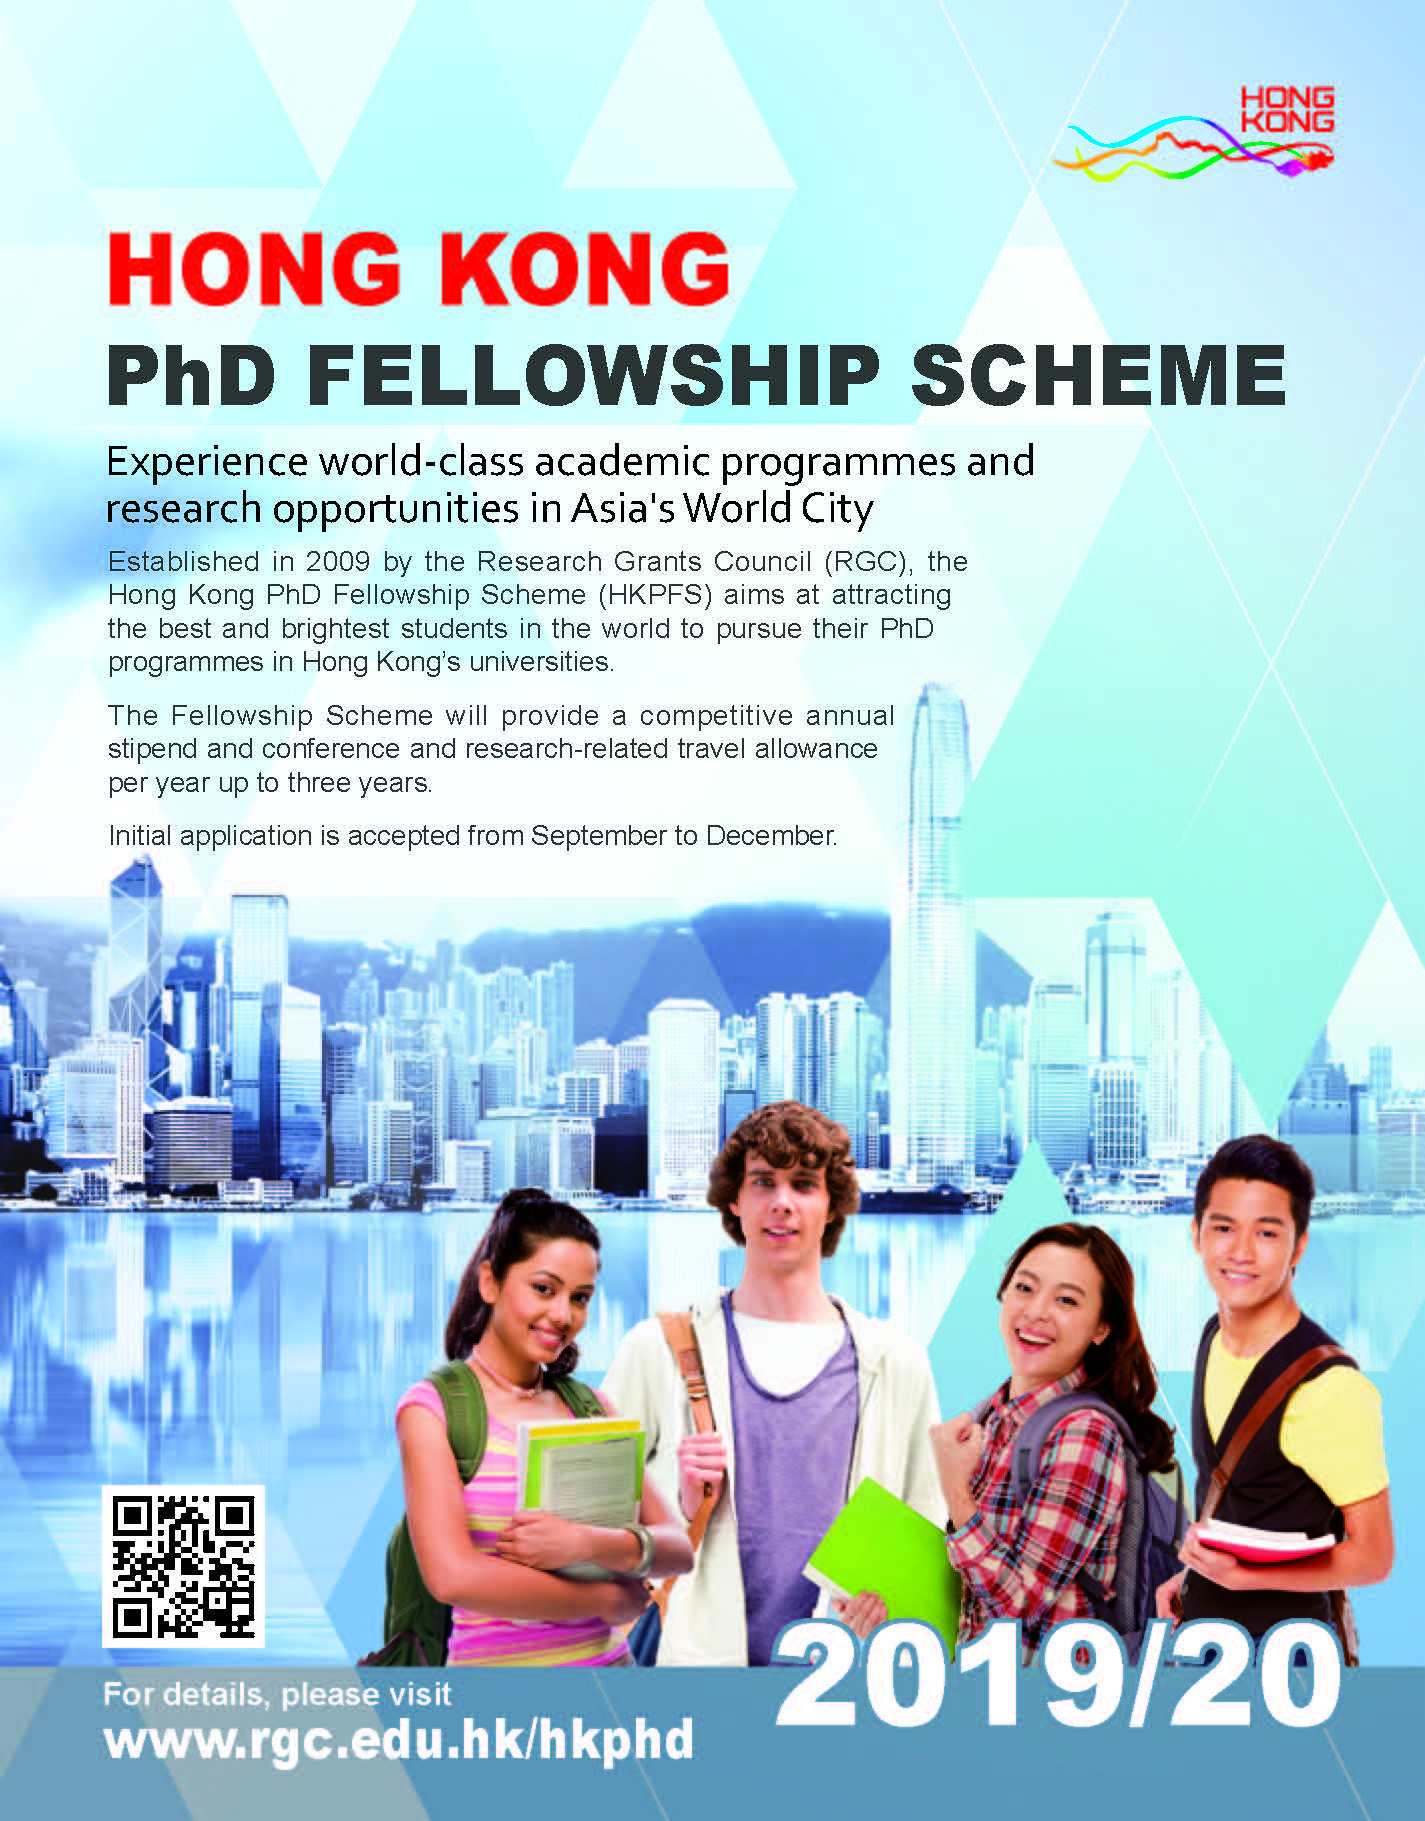 phd delivery hk